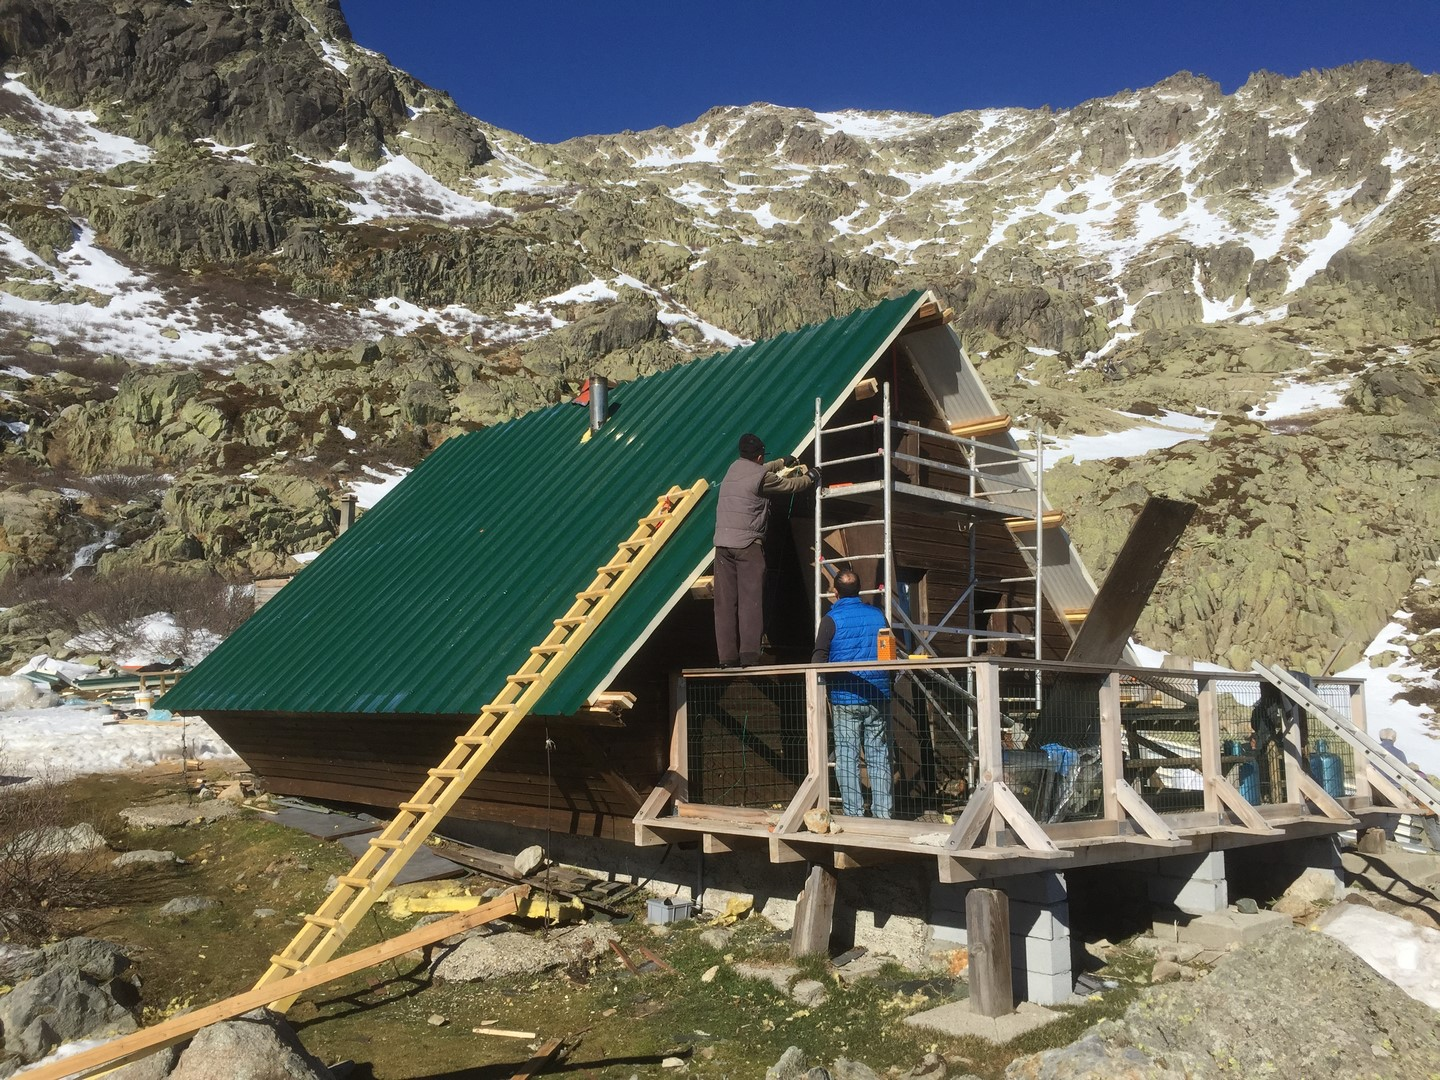 travaux-de-renovation-refuges-montagne-pietra-piana-corse-3